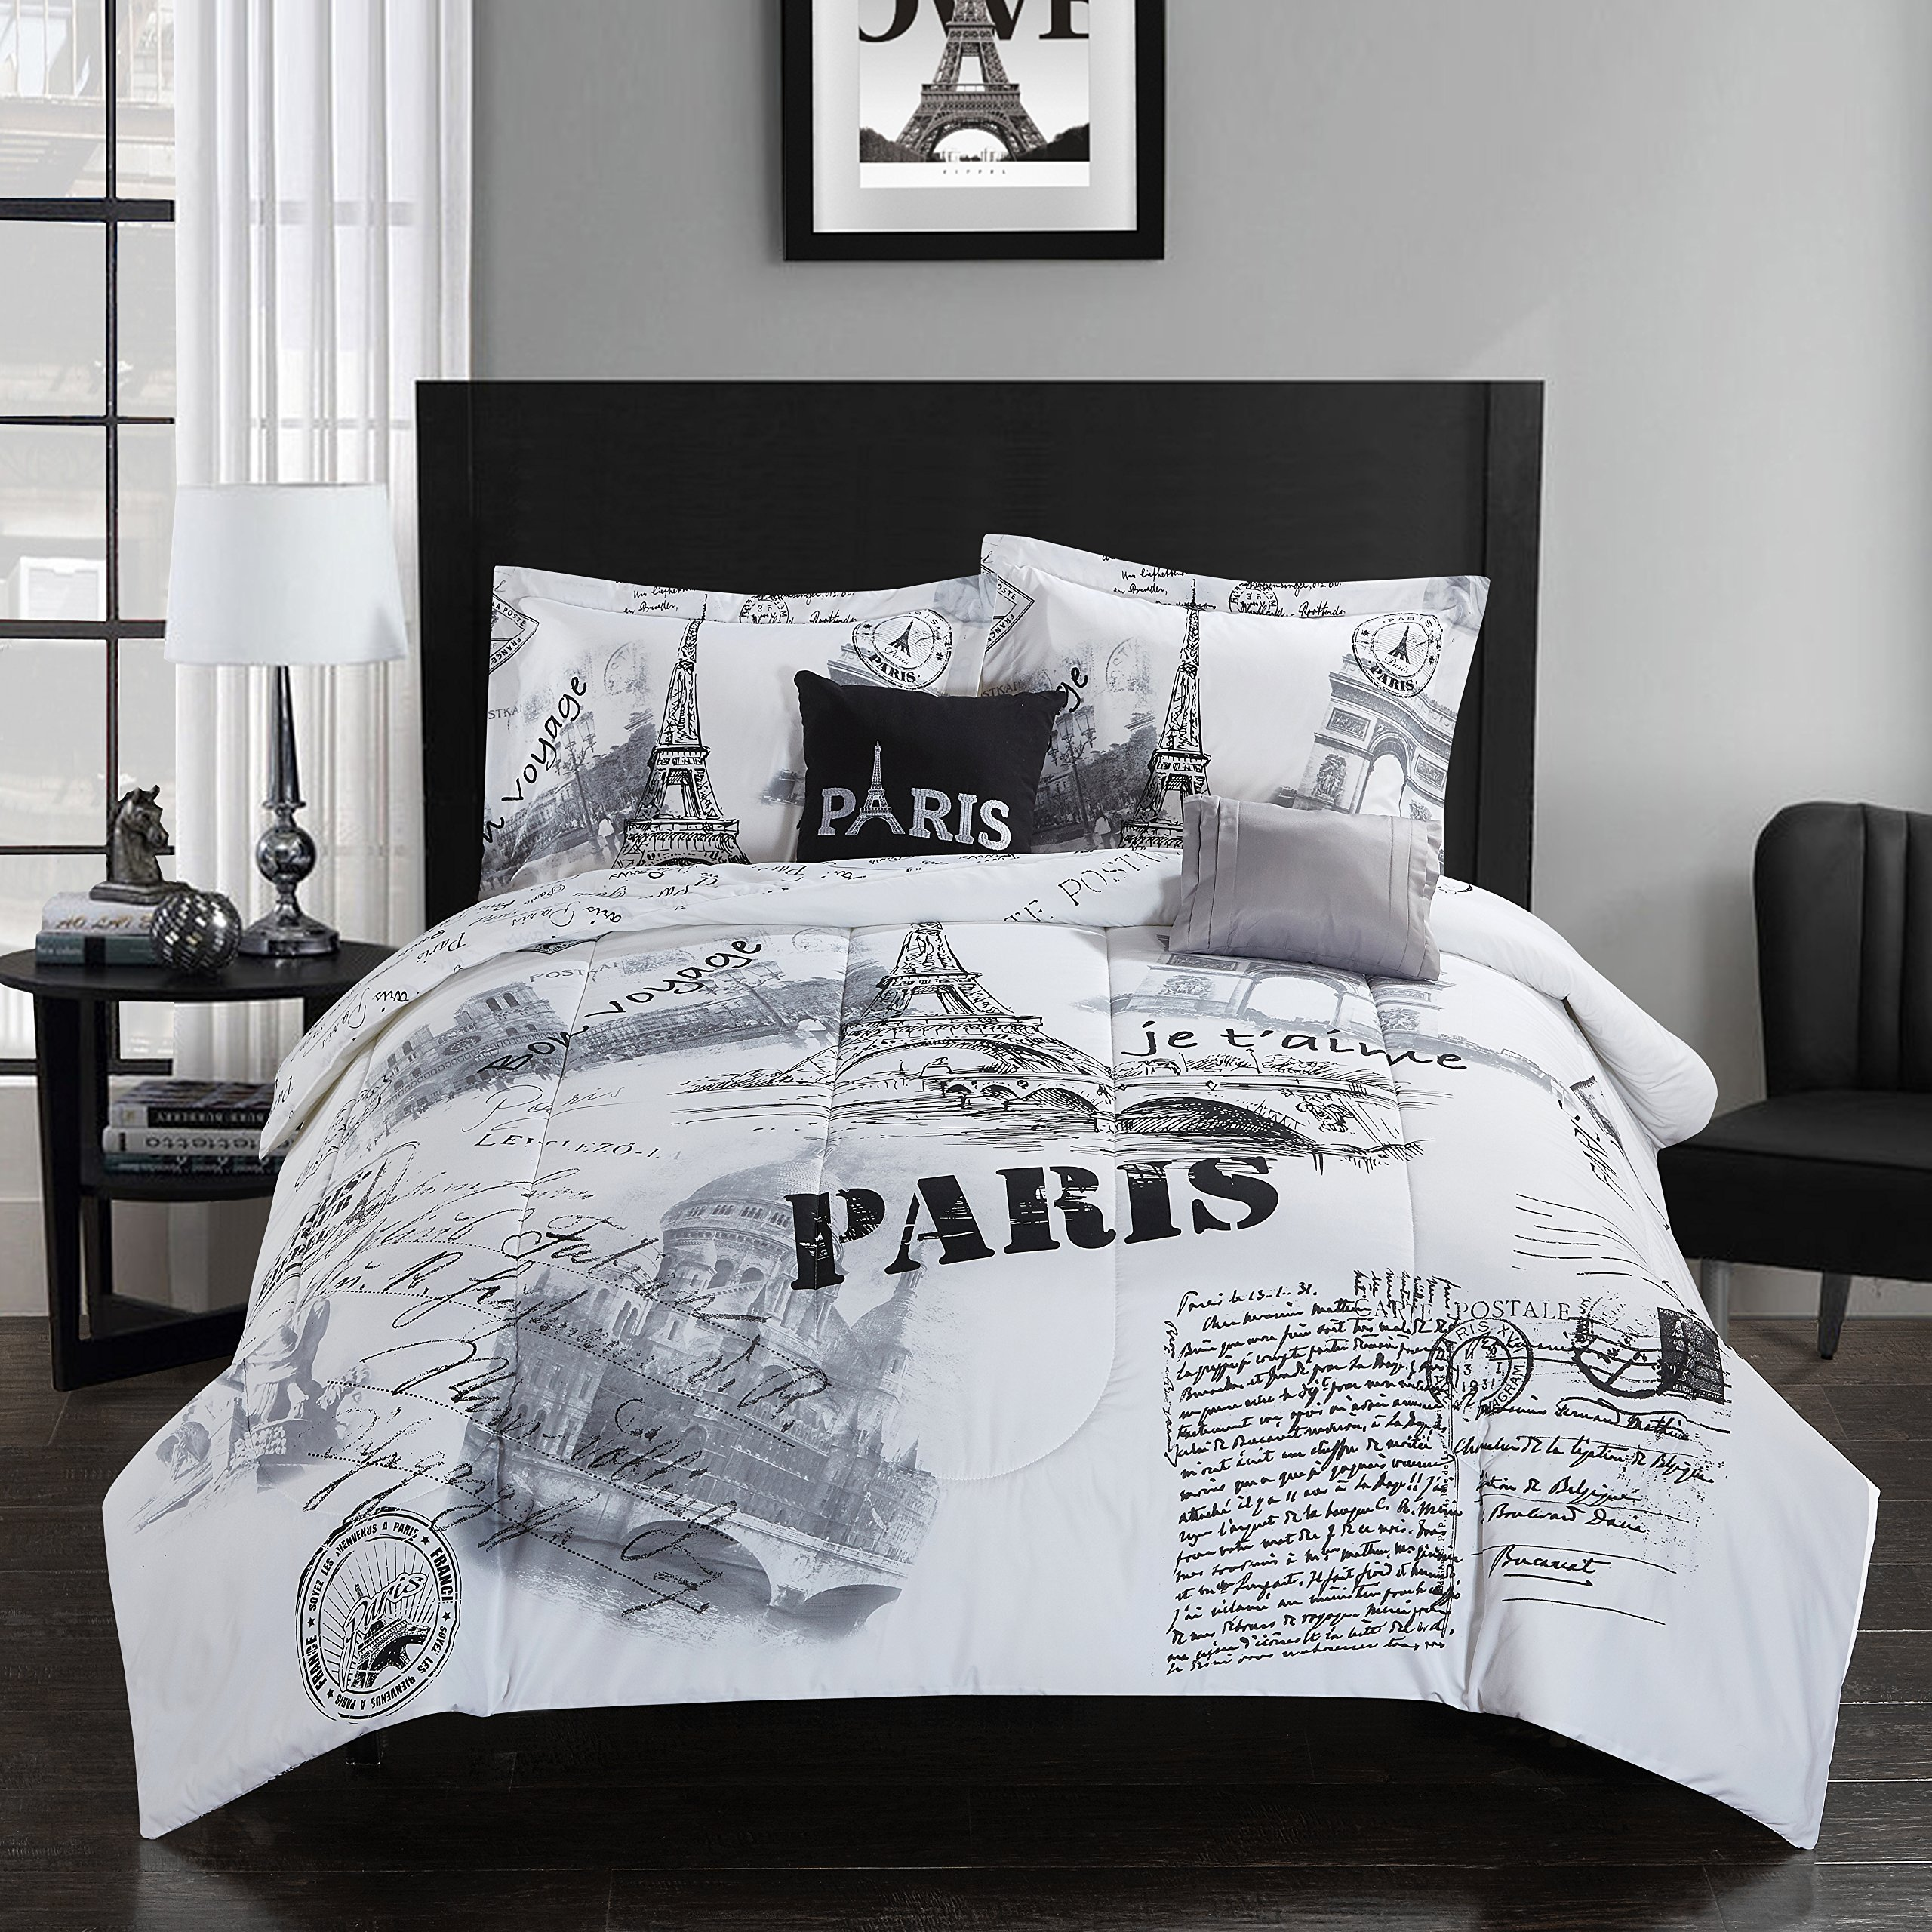 CASA Paris Comforter Set, Full/Queen, 5 Piece by CASA (Image #4)